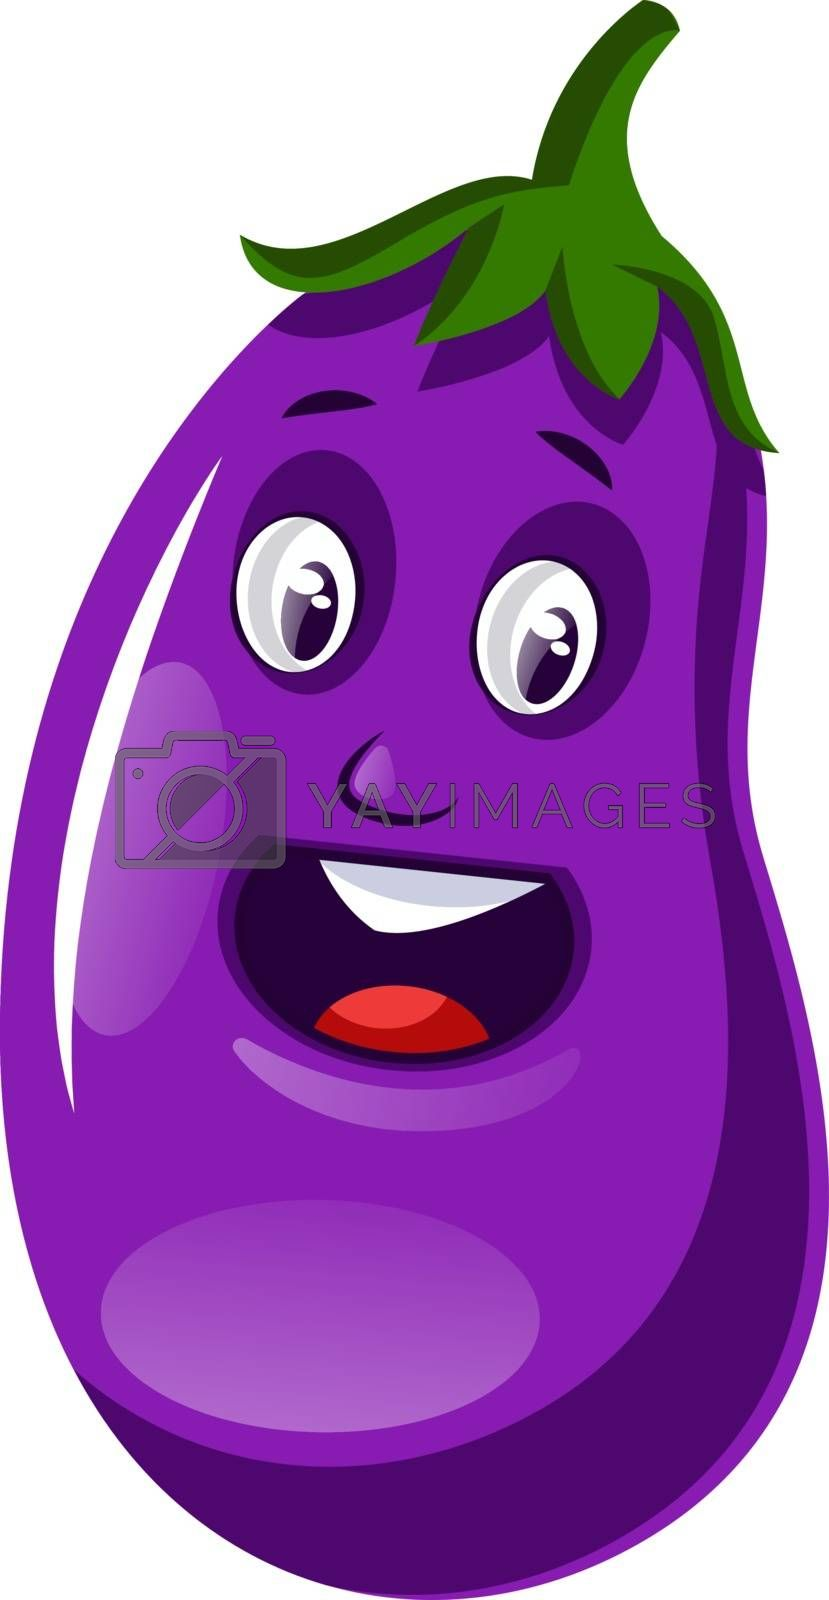 Royalty free image of Surprised brinjal illustration vector on white background by Morphart